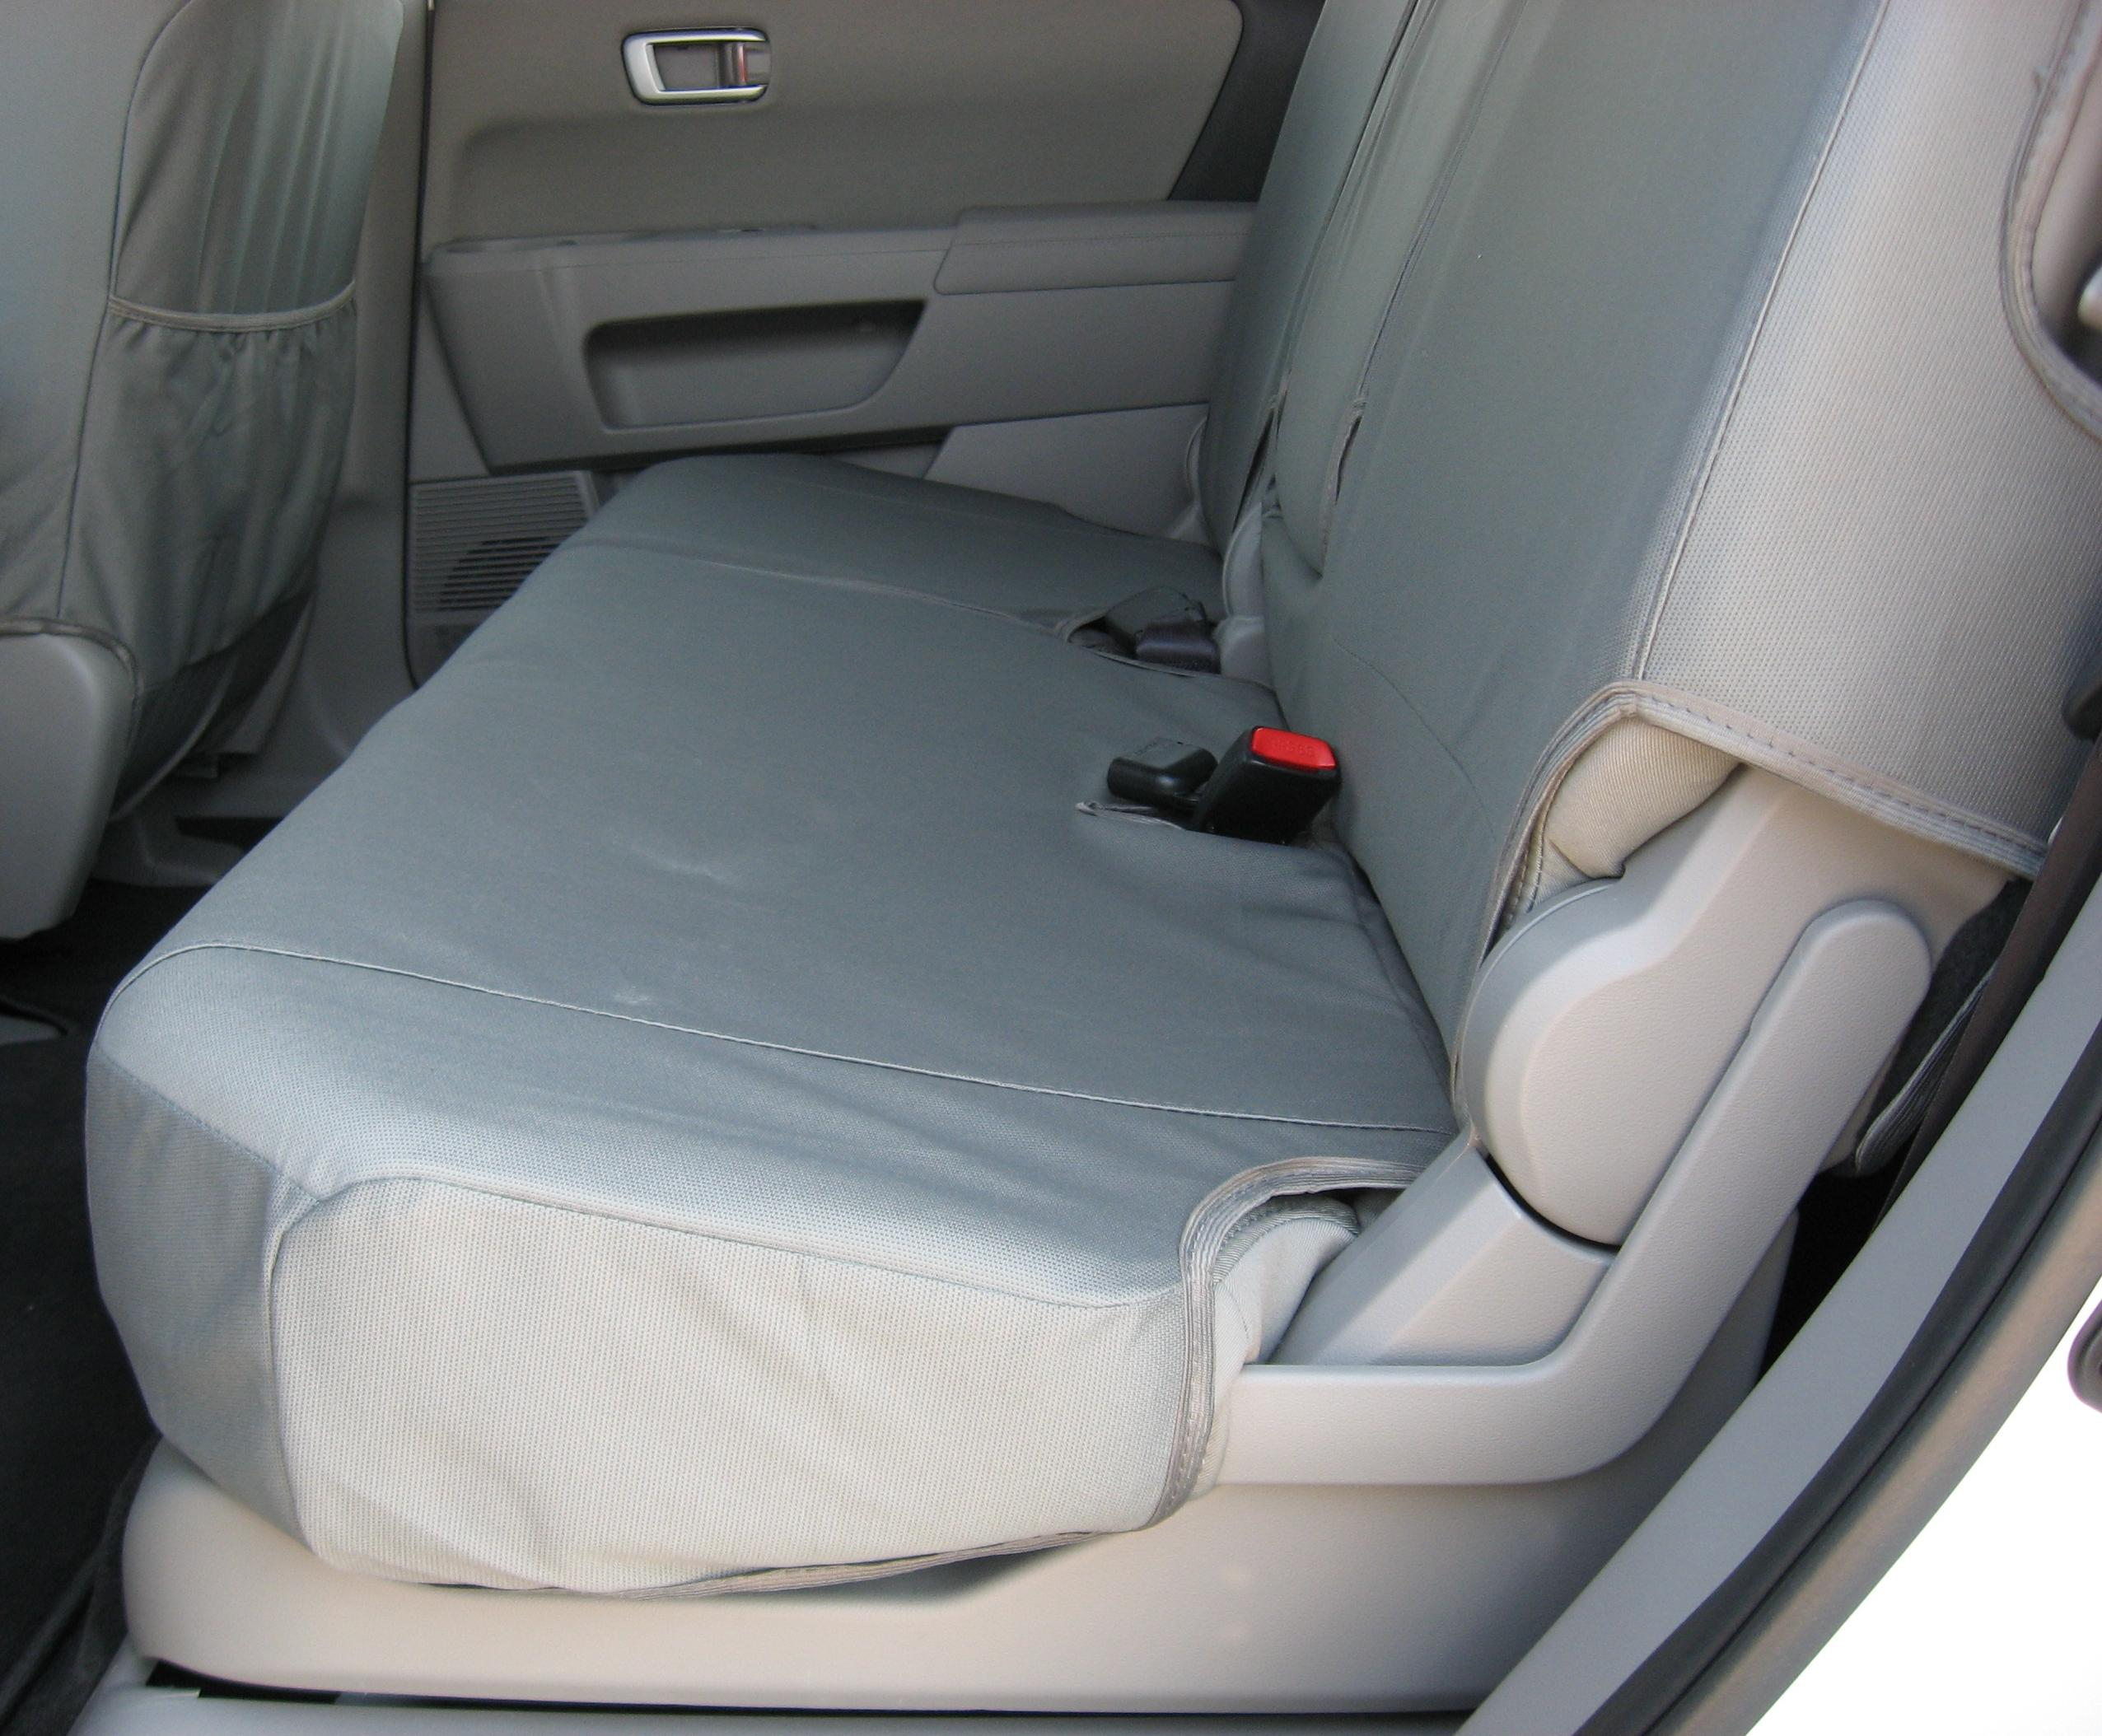 2009 2011 Honda Pilot Middle 60 40 Split Seat With Integrated Armrest Durafit Covers Custom